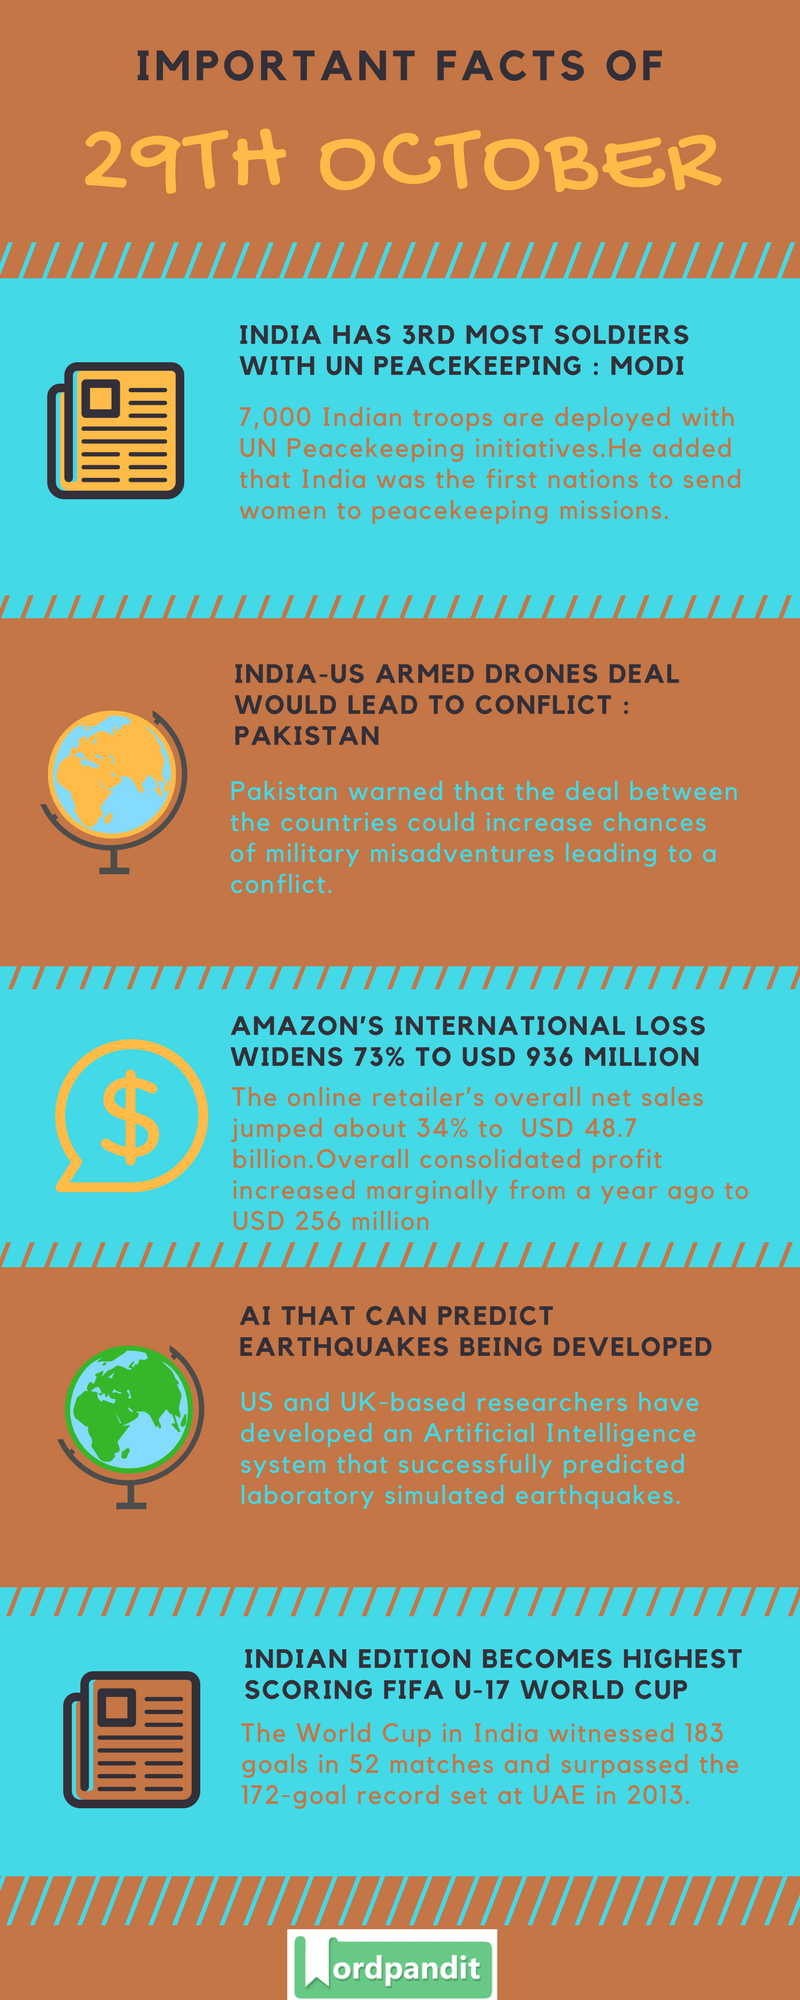 Daily-Current-Affairs-29-october-2017-Current-Affairs-Quiz-october-29-2017-Current-Affairs-Infographic